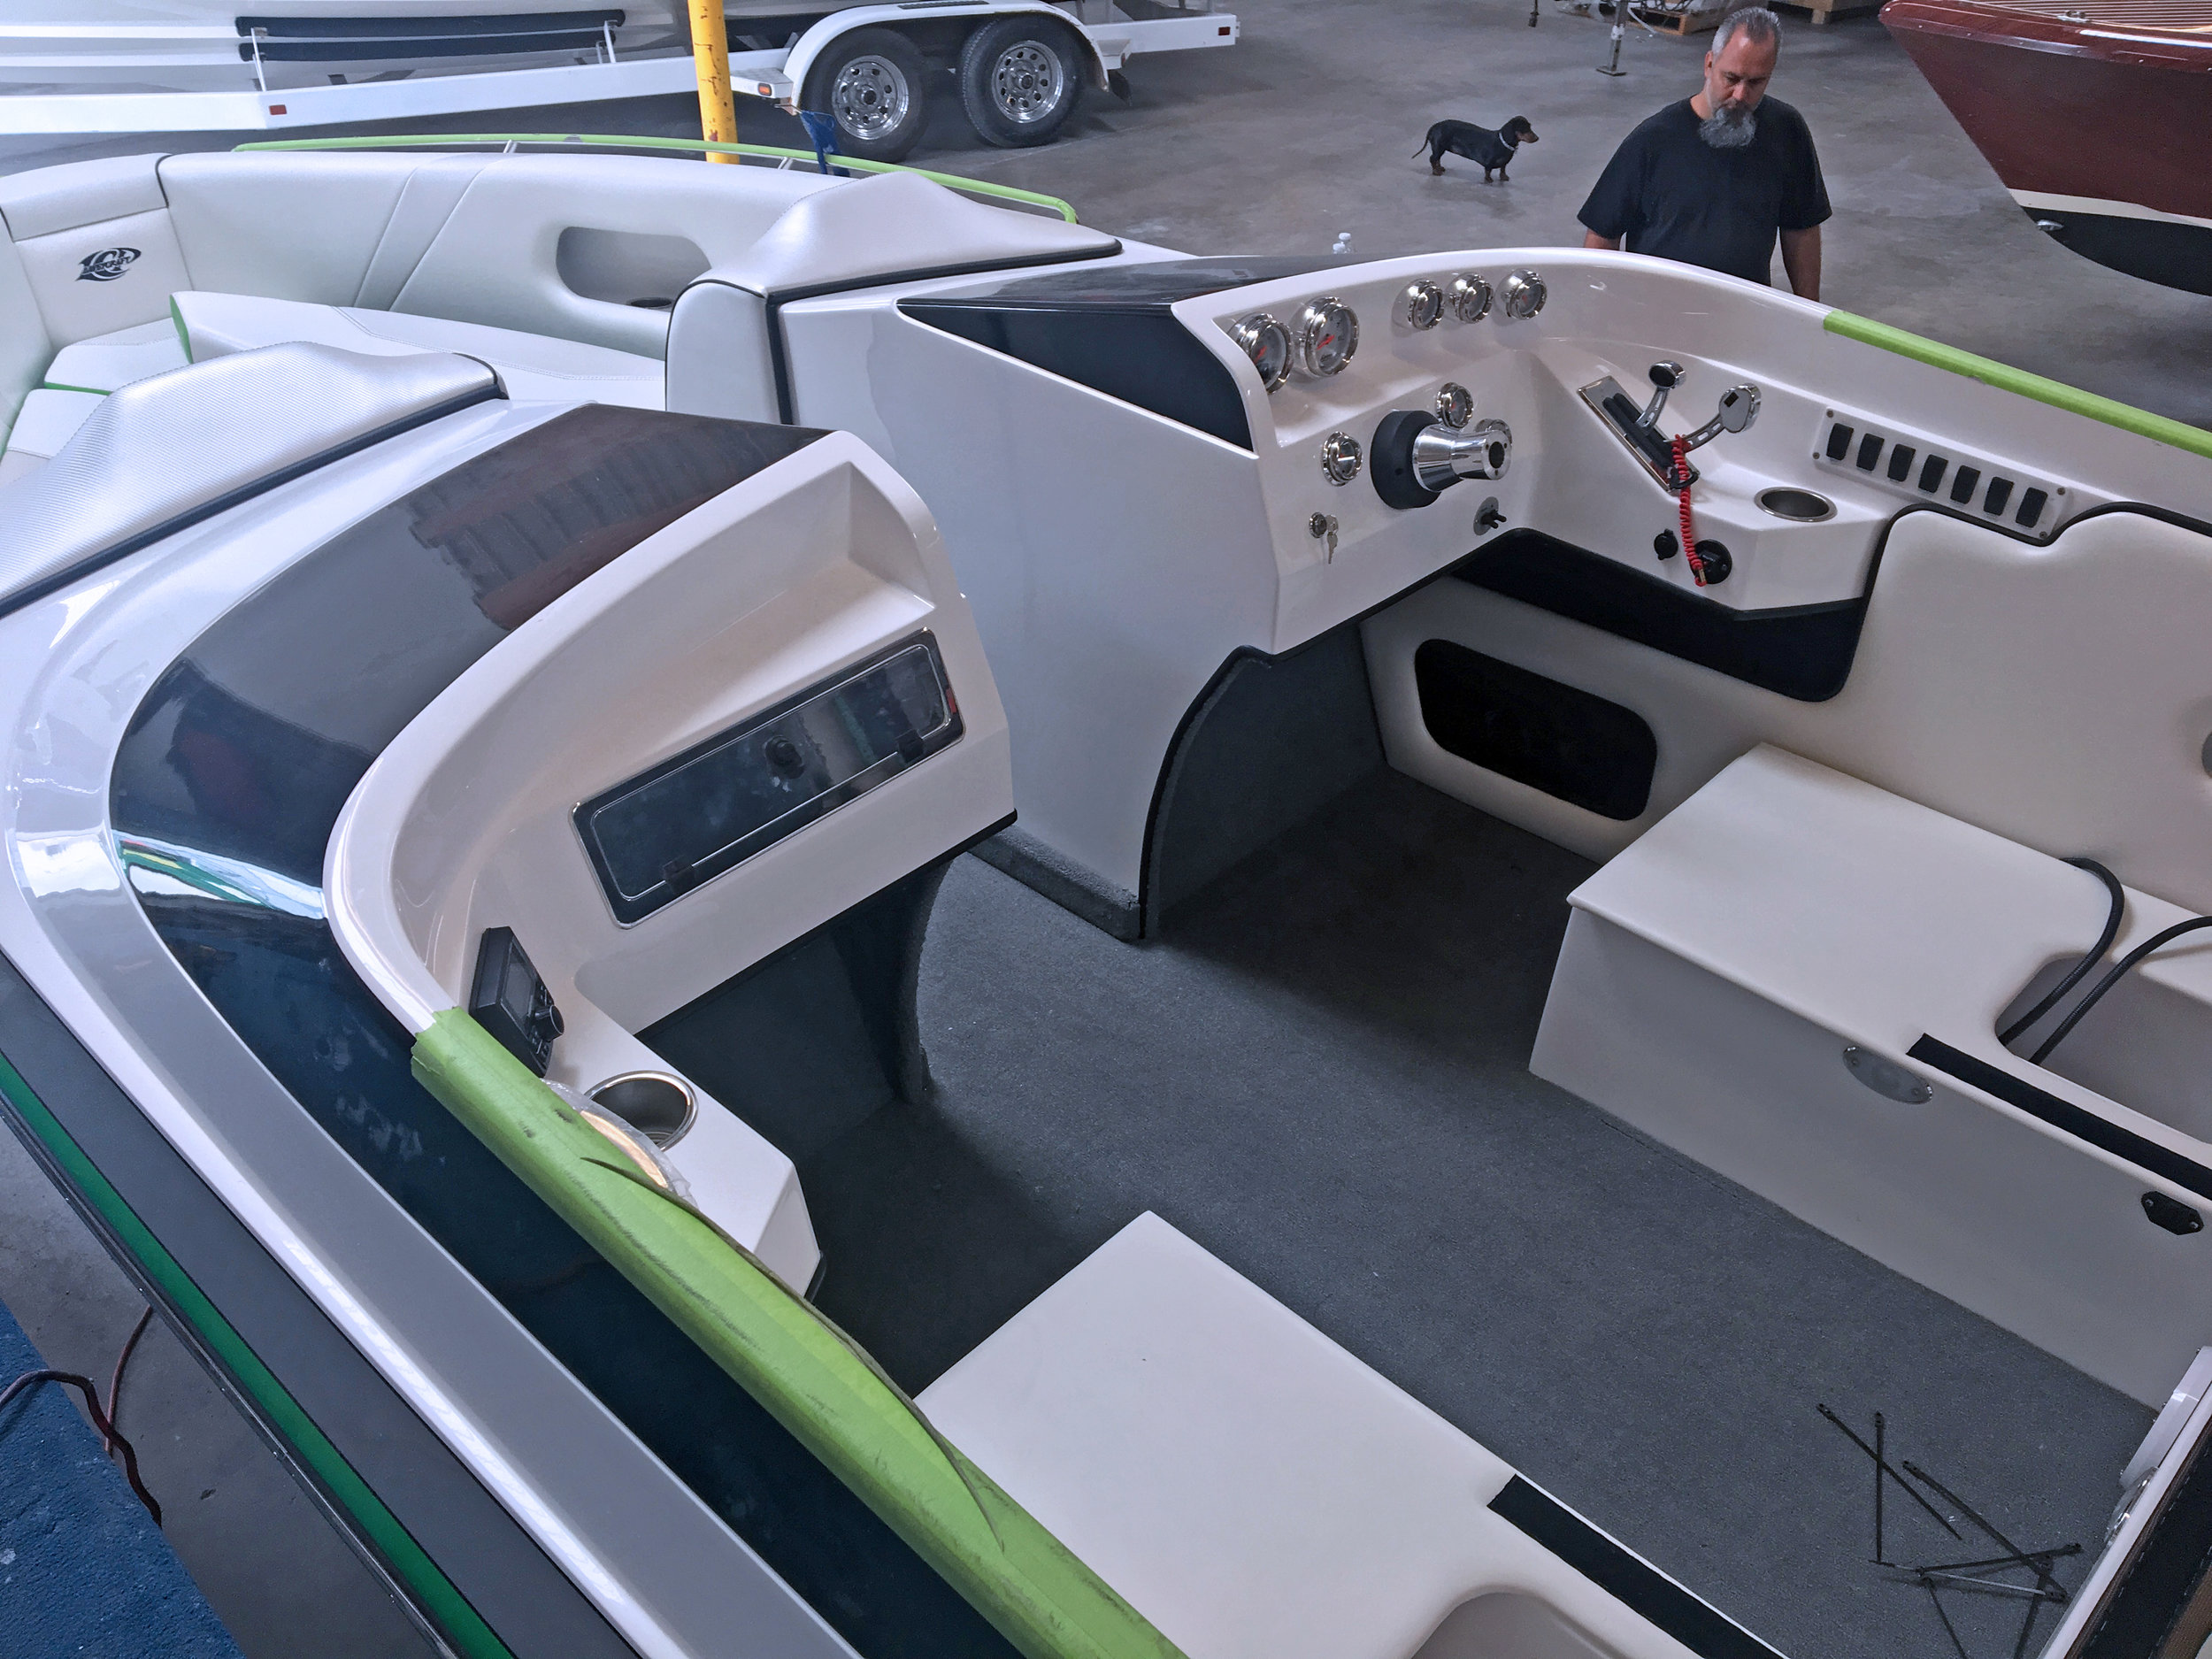 Lavey Craft 24 NuEra interior front May 2018.jpg